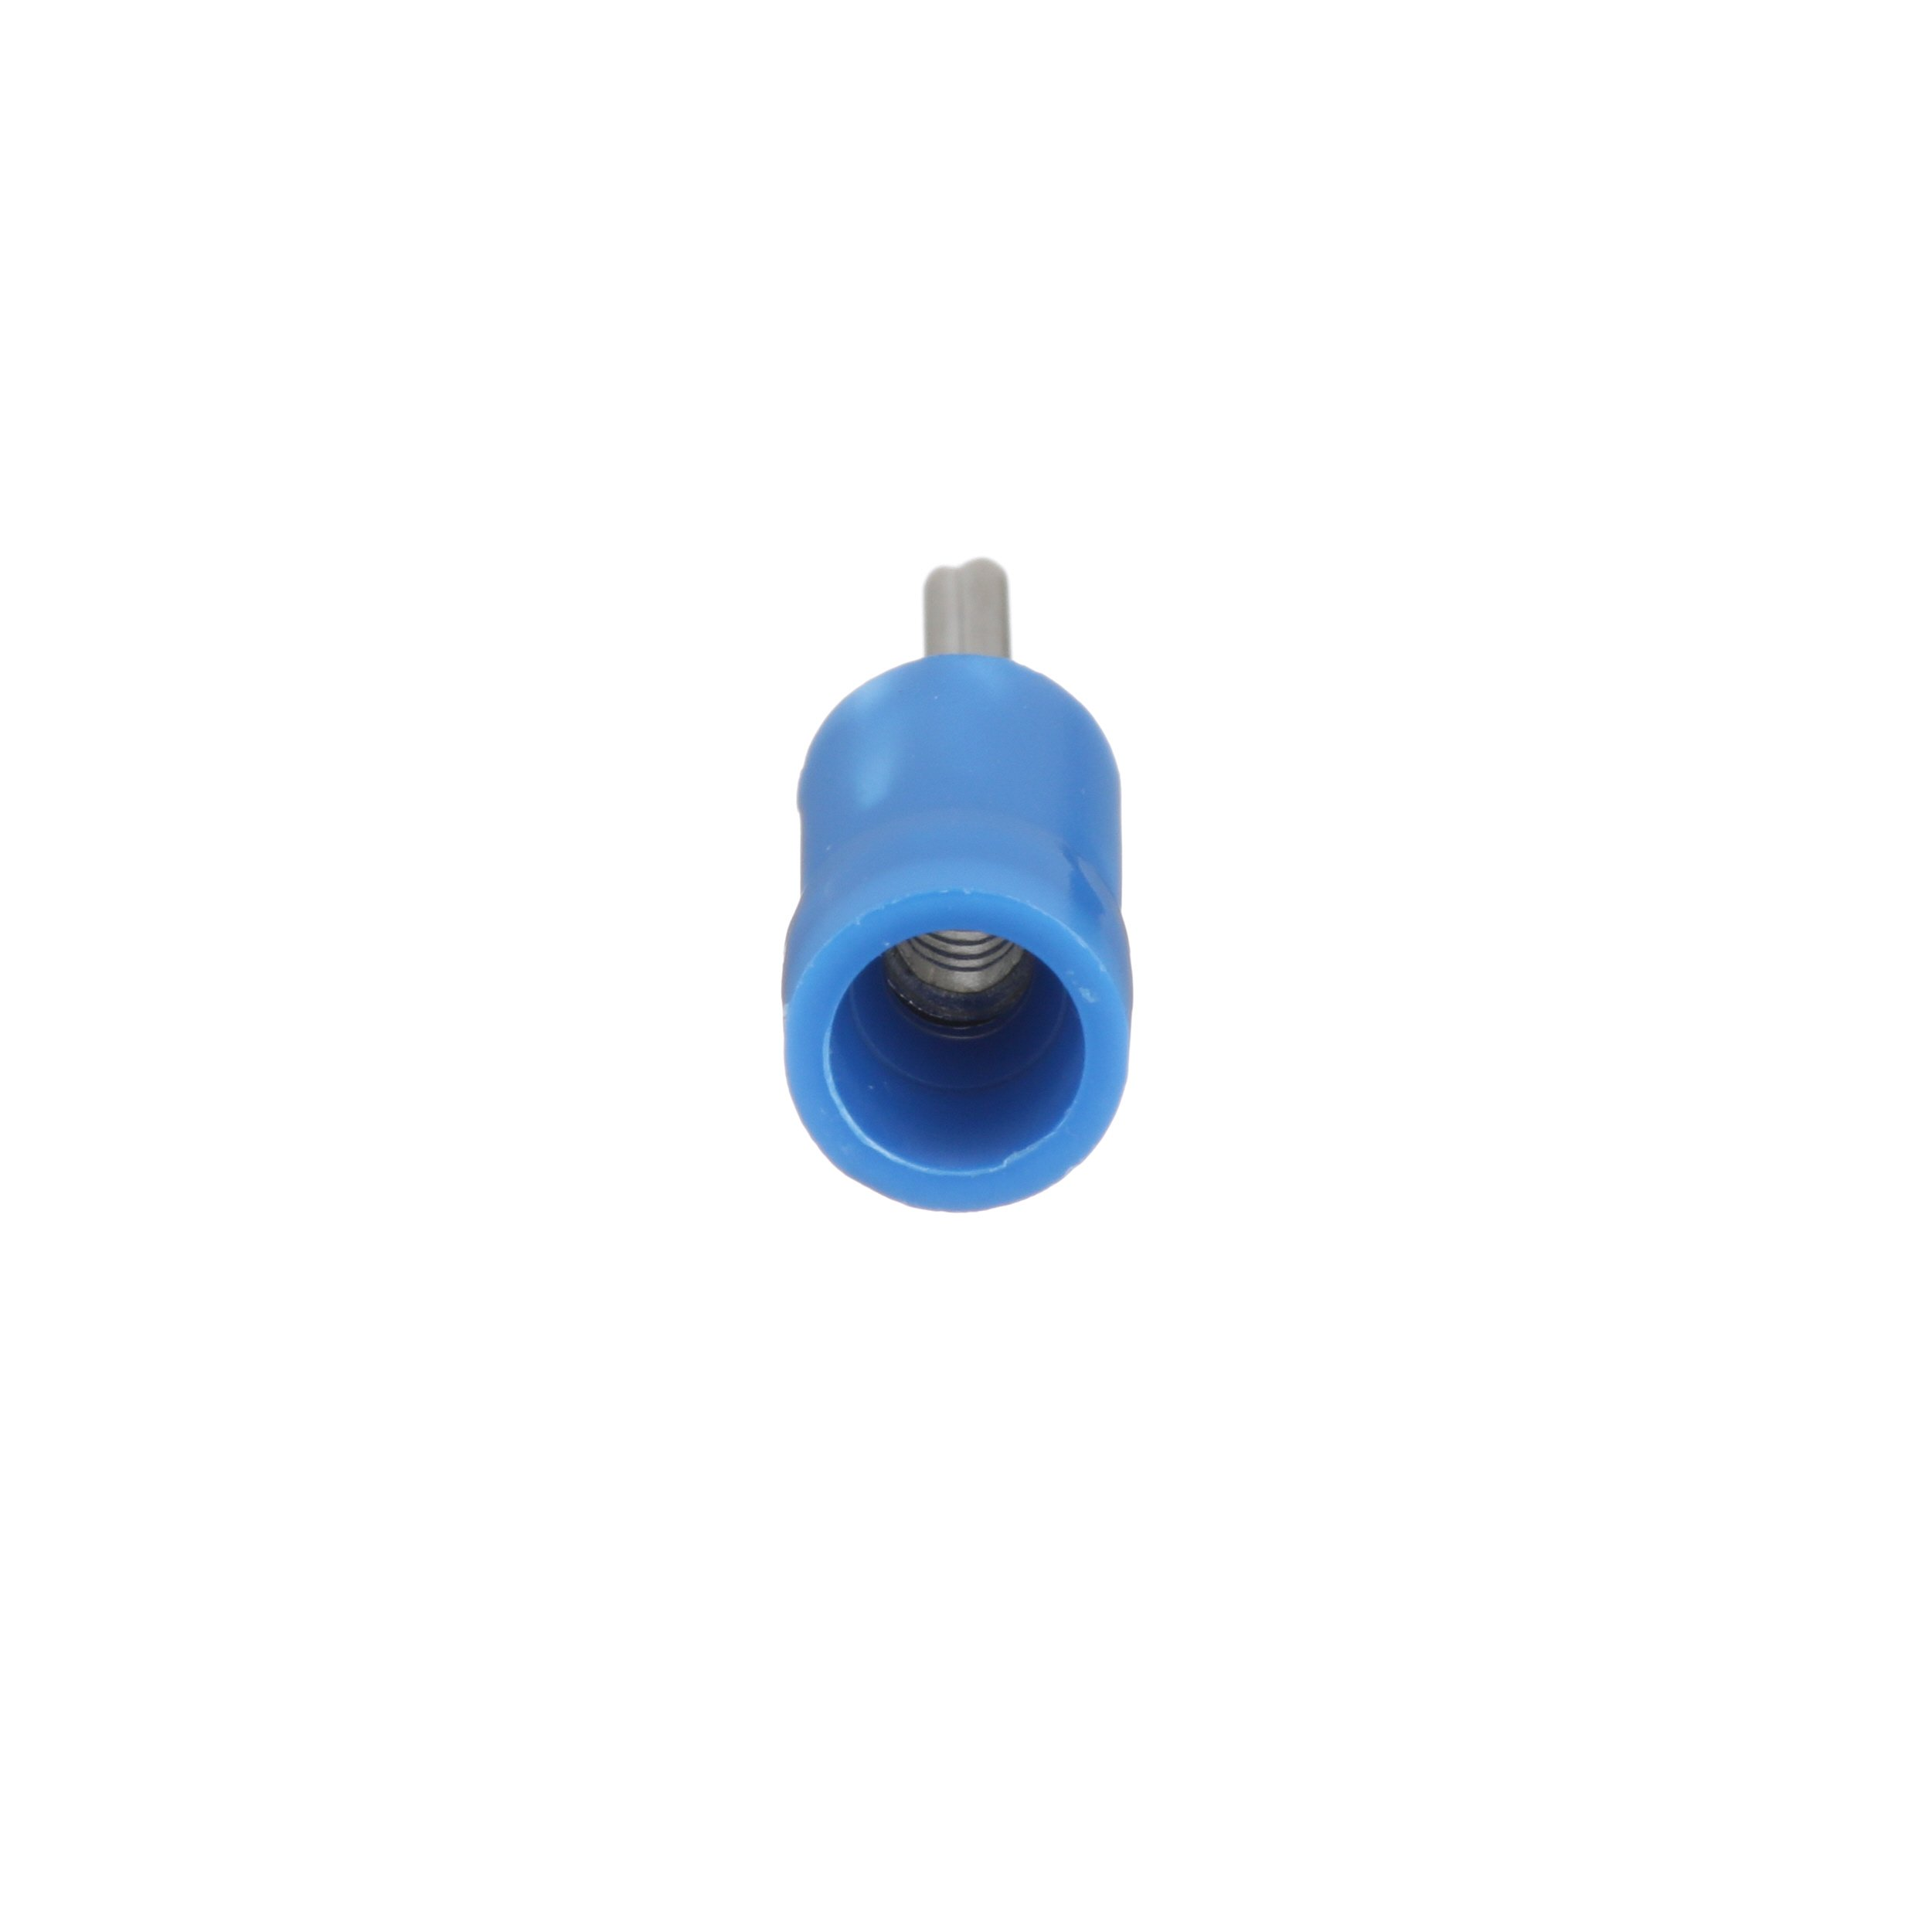 Panduit PV14-P47-C Pin Terminal, Vinyl Insulated, 16 - 14 AWG, .49 Pin Length (100-Pack)